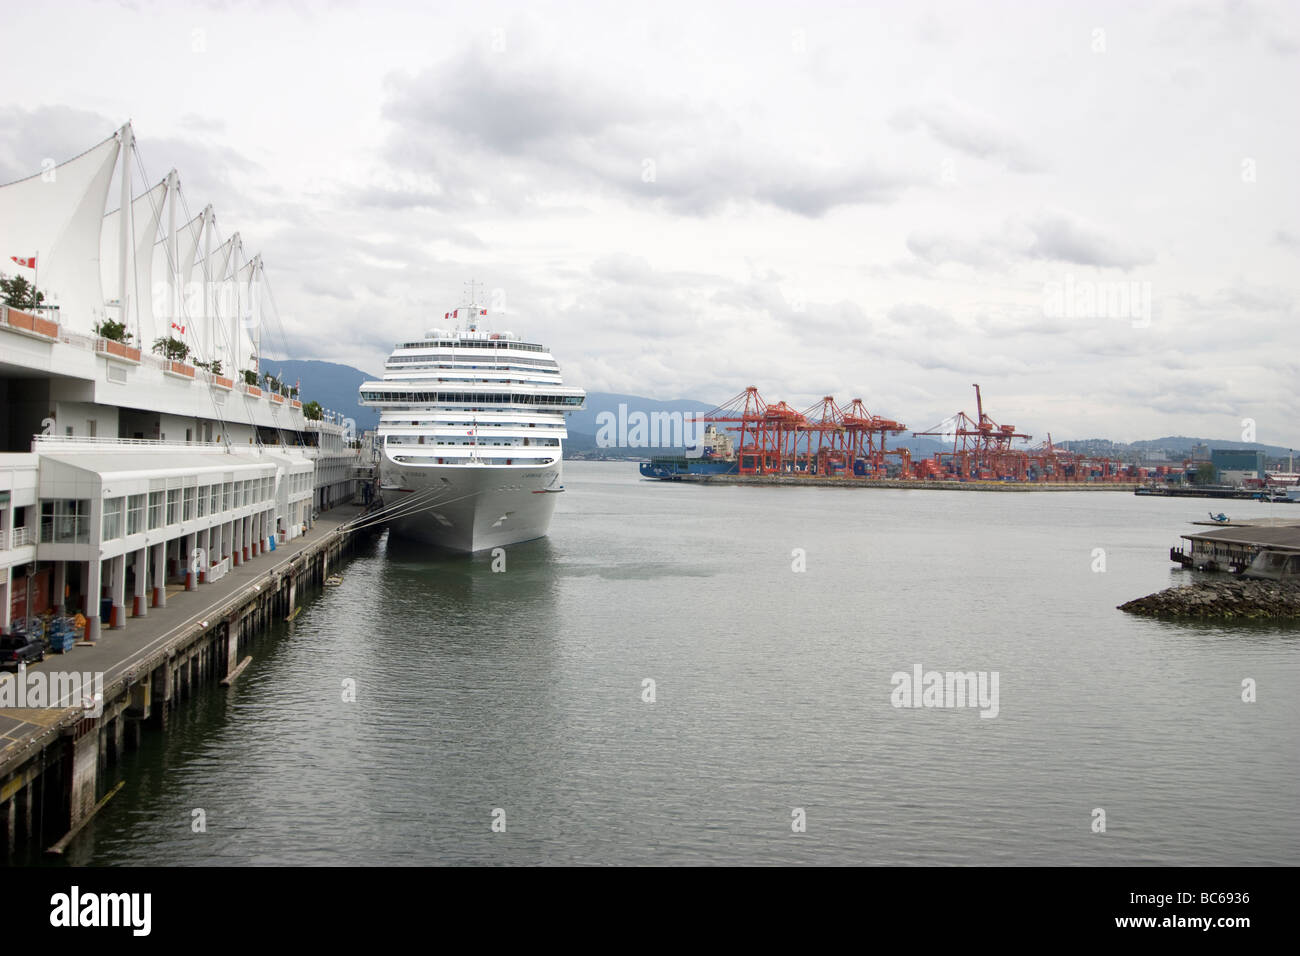 Carnival splendor cruise liner downtown Vancouver with port in background - Stock Image